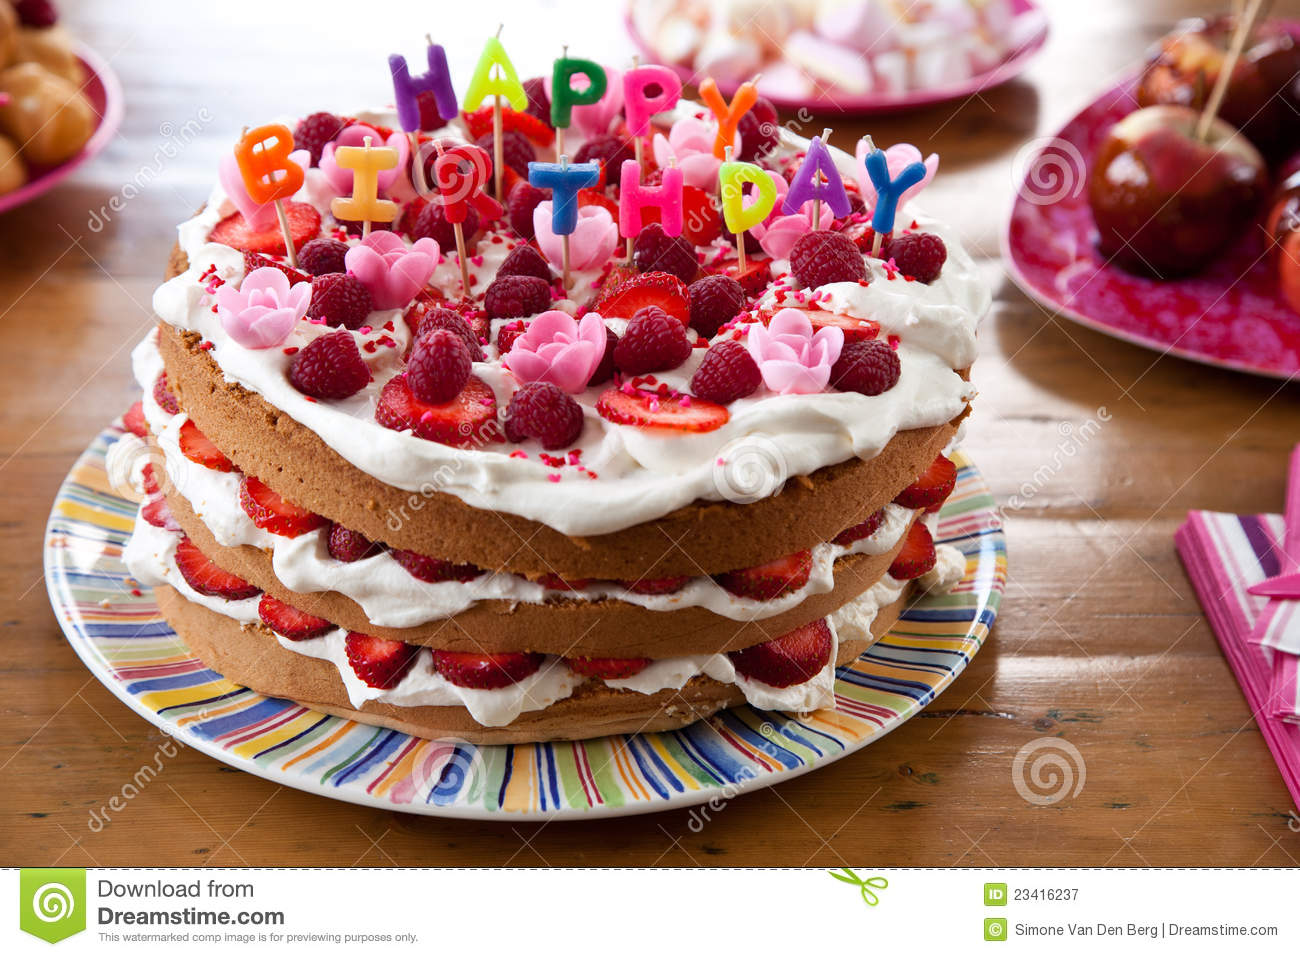 Happy Birthday Cake Stock Image Image Of Colourful Layered